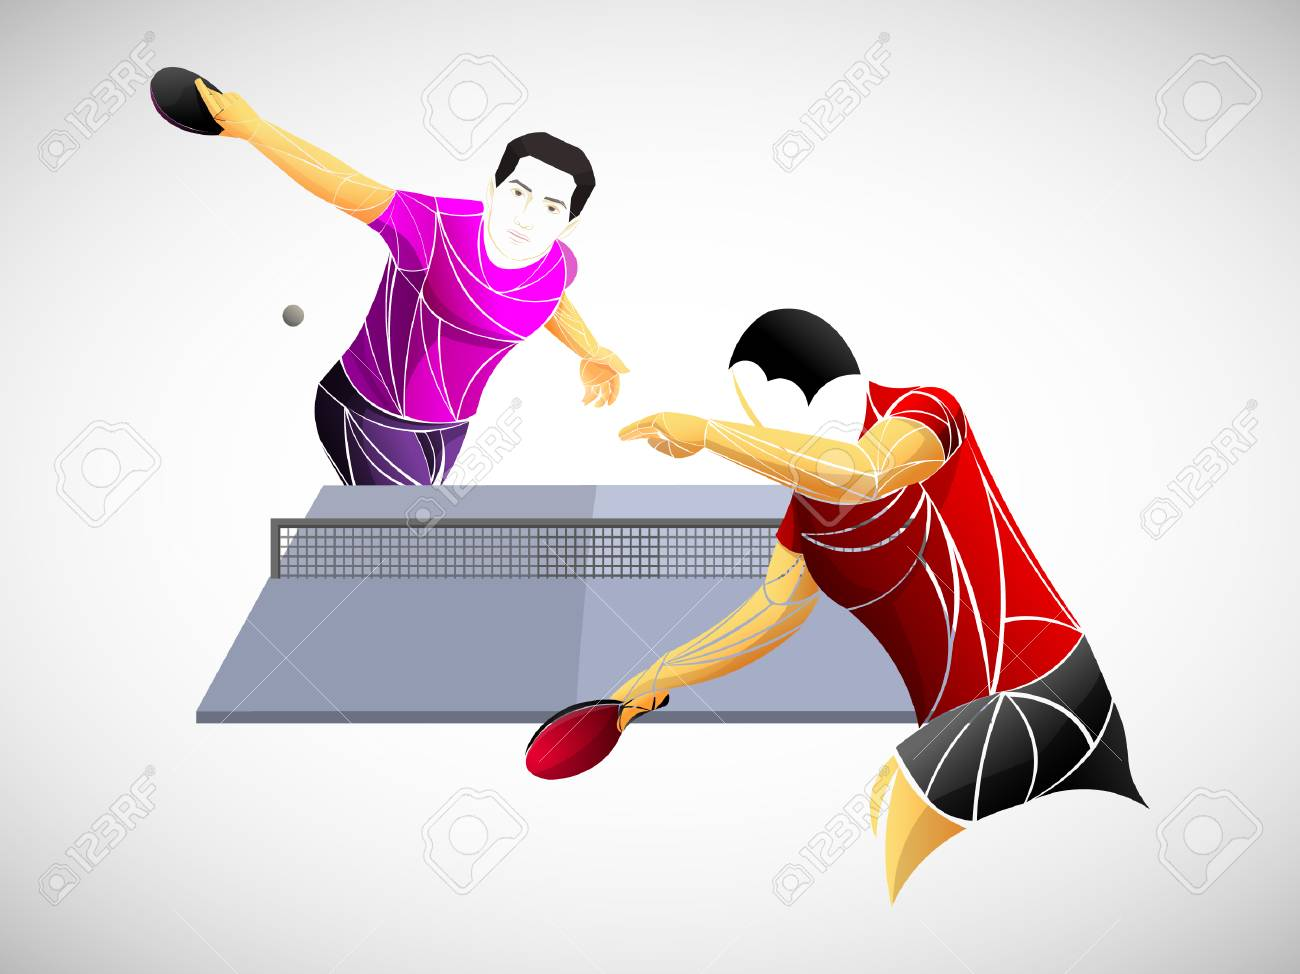 Table Tennis Ping Pong Table Tennis Player Athlete Game